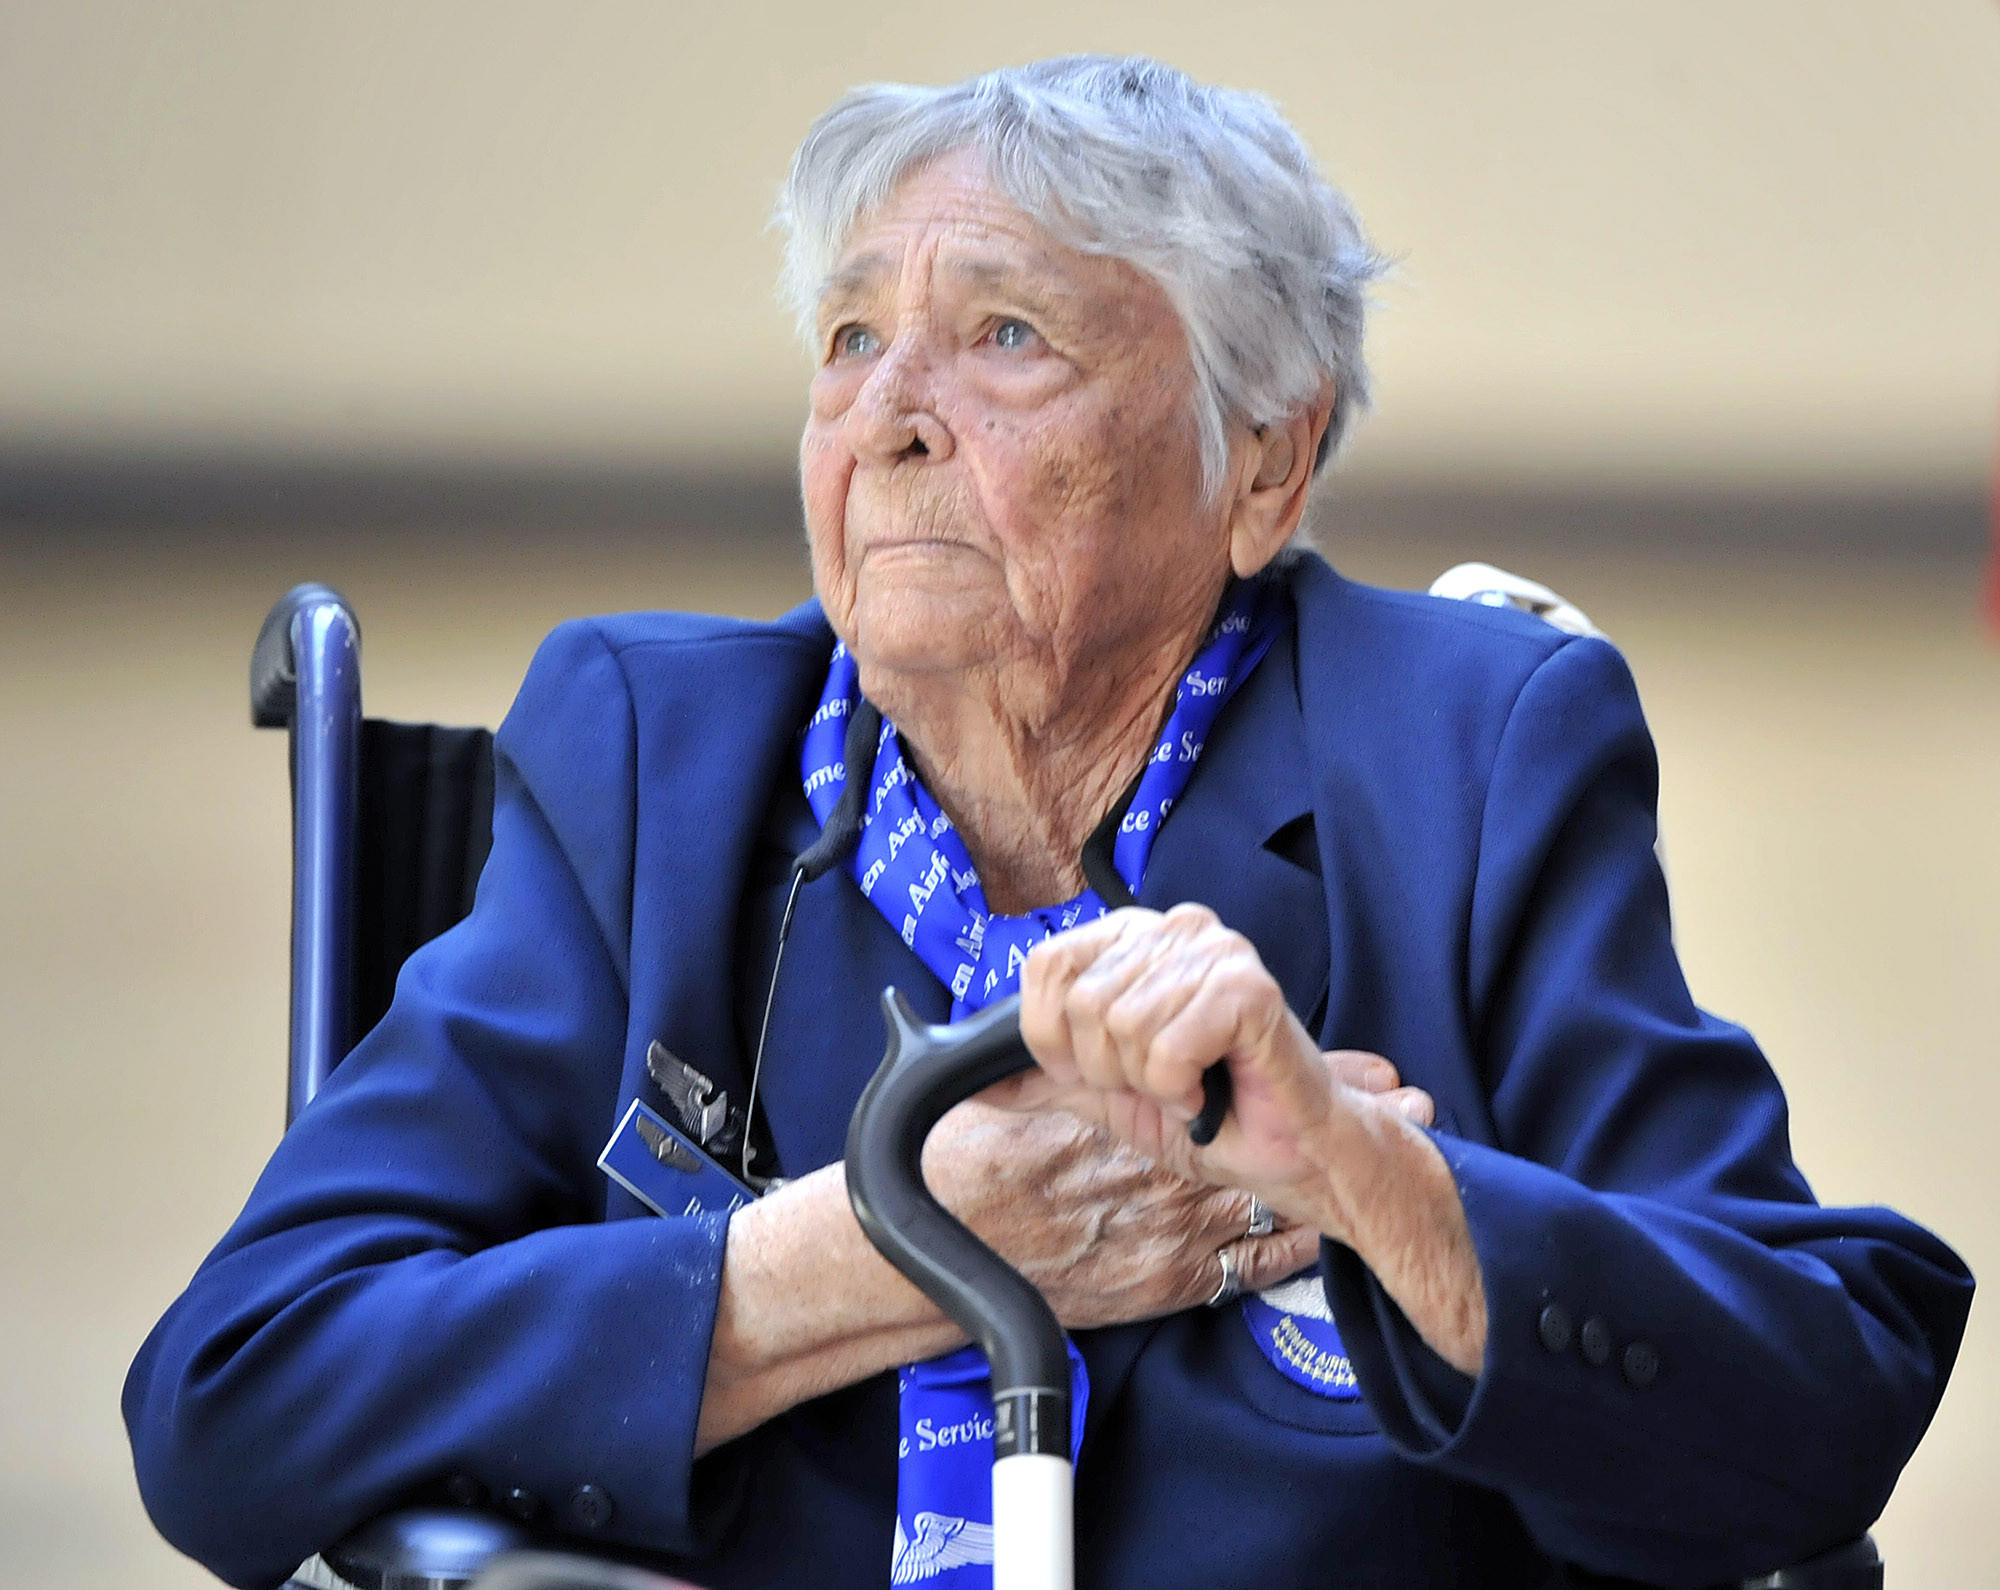 Honoree Beverly Beesemyer puts her hand on her heart during the Pledge of Alegiance at an assembly honoring the 1937 Flintridge Sacred Heart Academy graduate at FSHA on Wednesday, March 12, 2014. Beesemyer was a WASP in WWII, one of a group of women who were the first female aviators in the military. She was honored with the Congressional Medal of Honor in 2010.